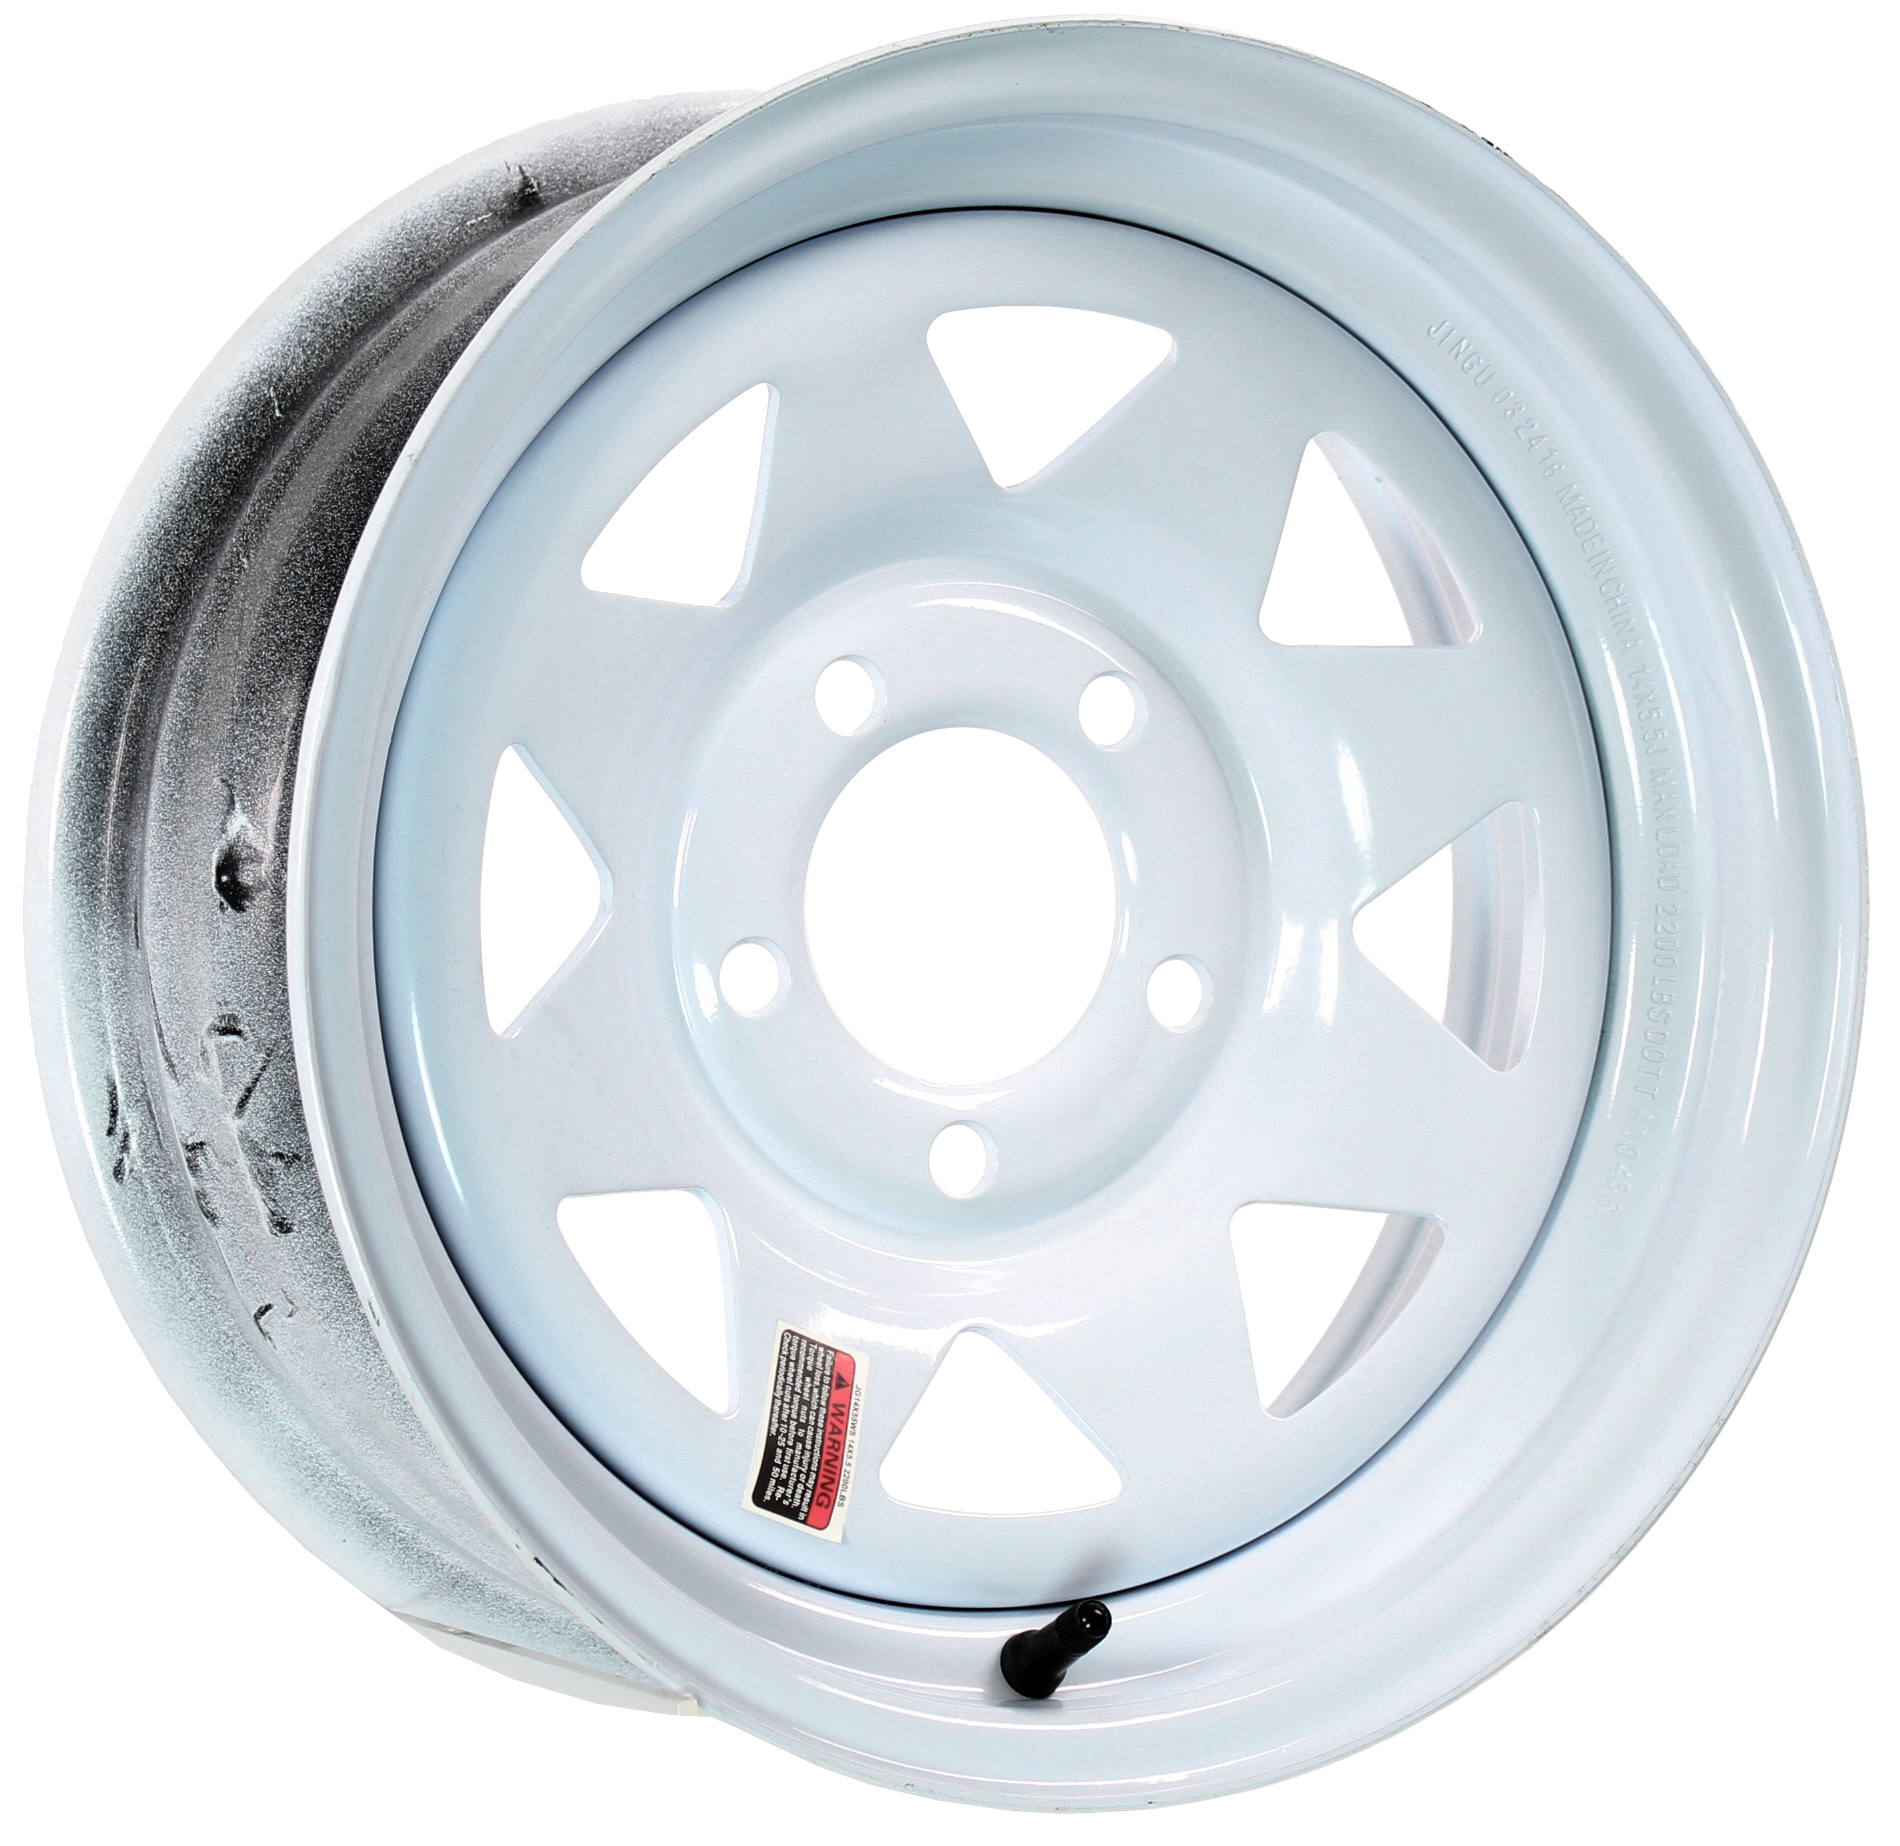 14x5.5 5-4.5 White Spoke Steel Trailer Wheel Image